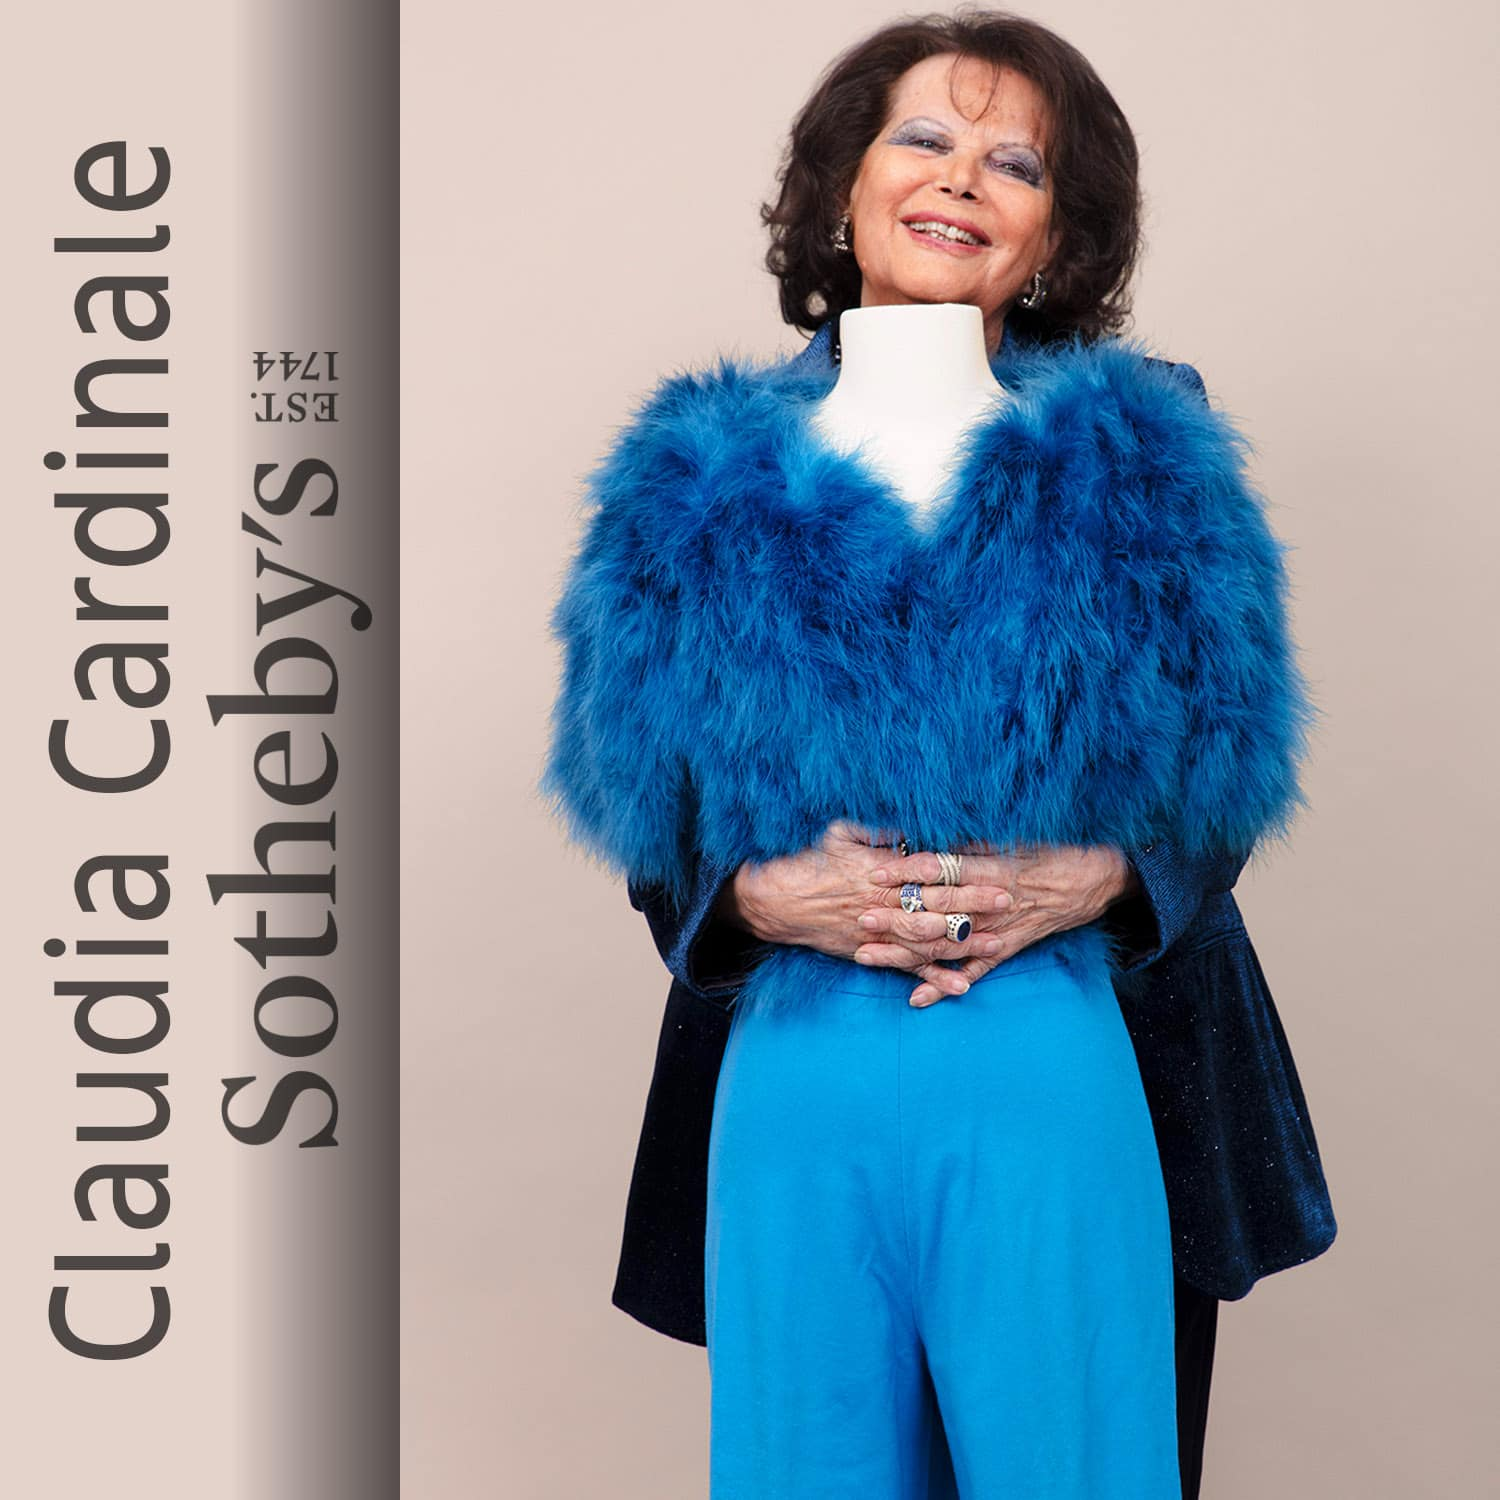 Claudia Cardinale at Sotheby's Paris by Runway Magazine